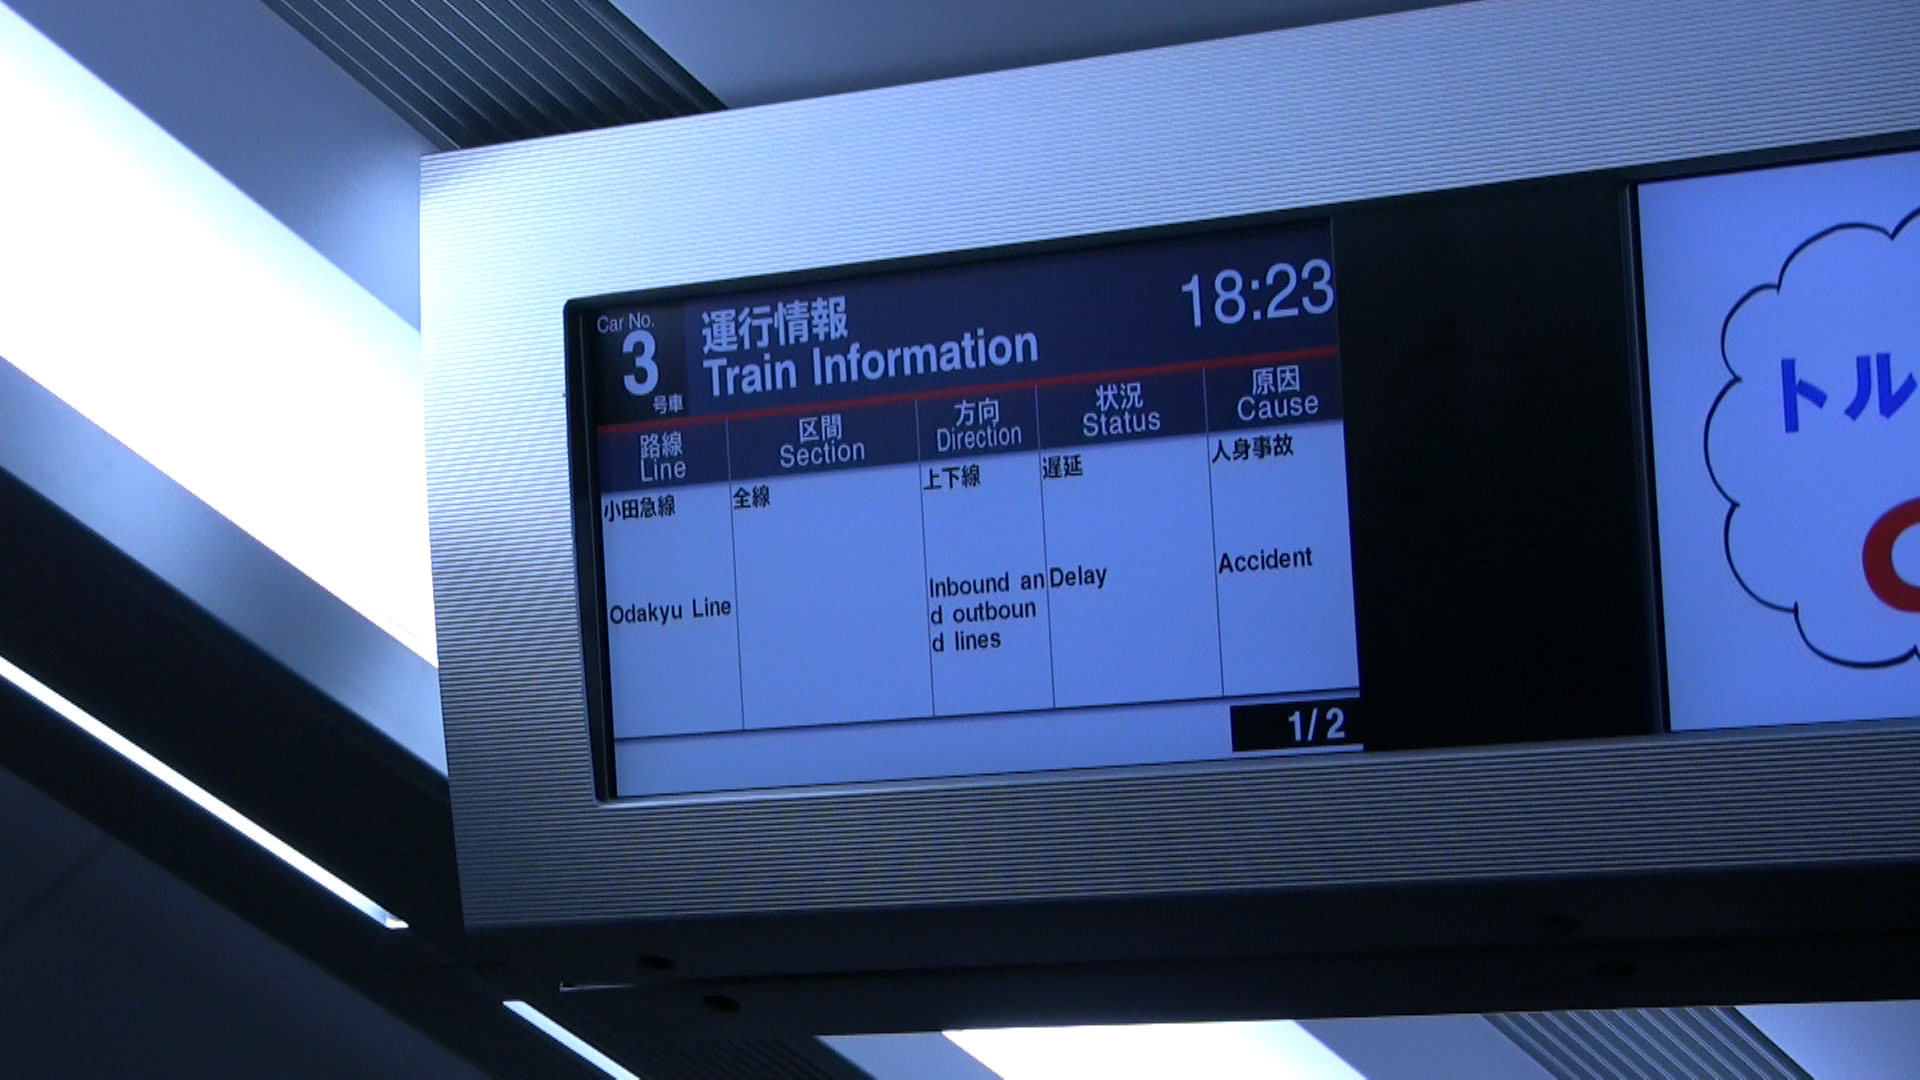 A TV in the Narita Express showing train information. There seems to have been an accident!